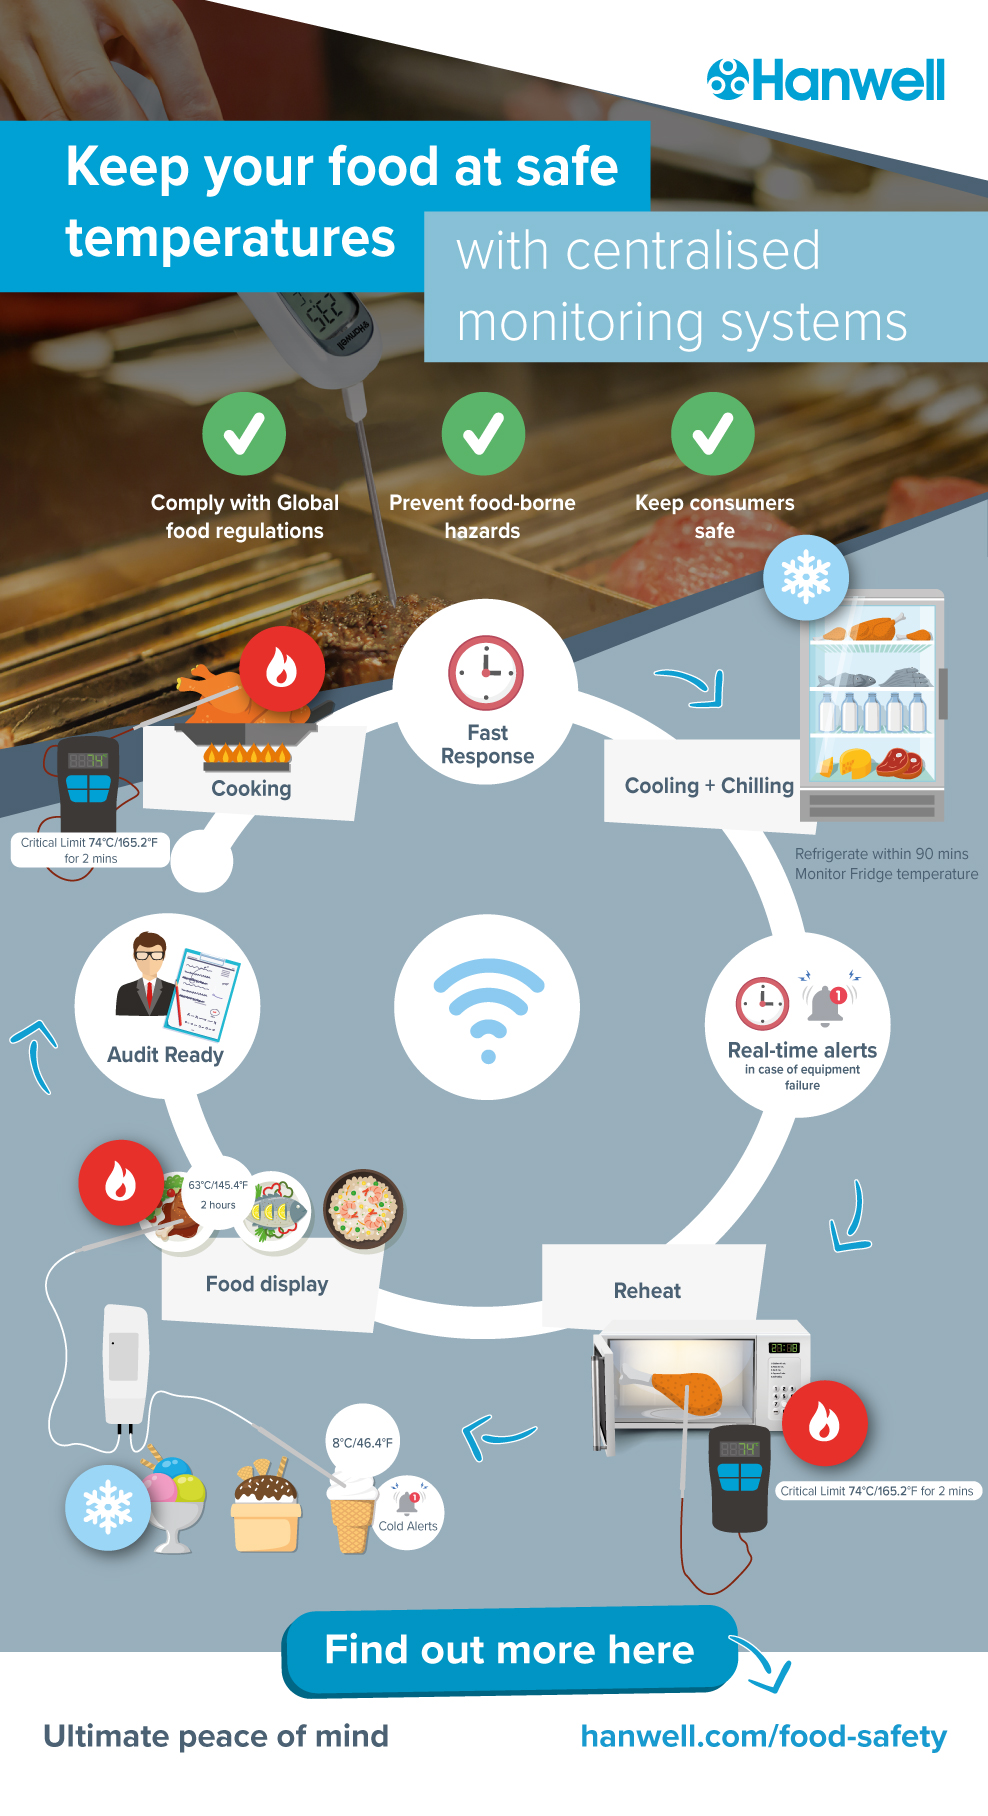 hanwell-Food-Safety-Infographic